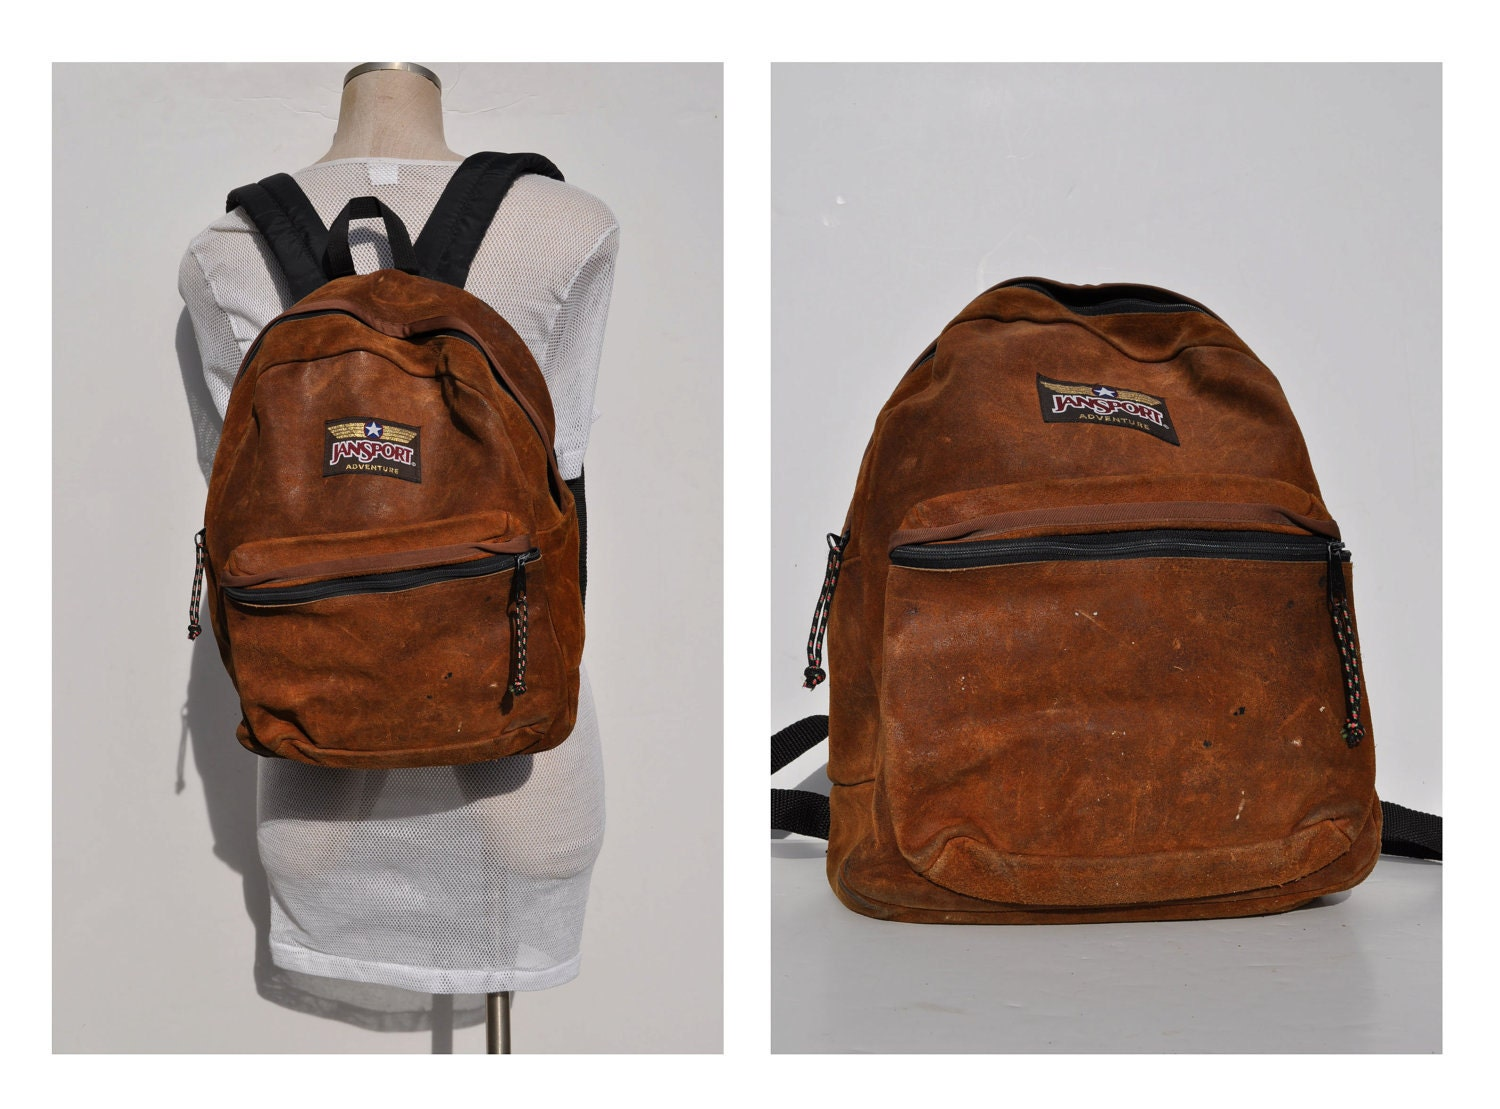 vintage leather backpack jansport back pack rucksack by. Black Bedroom Furniture Sets. Home Design Ideas